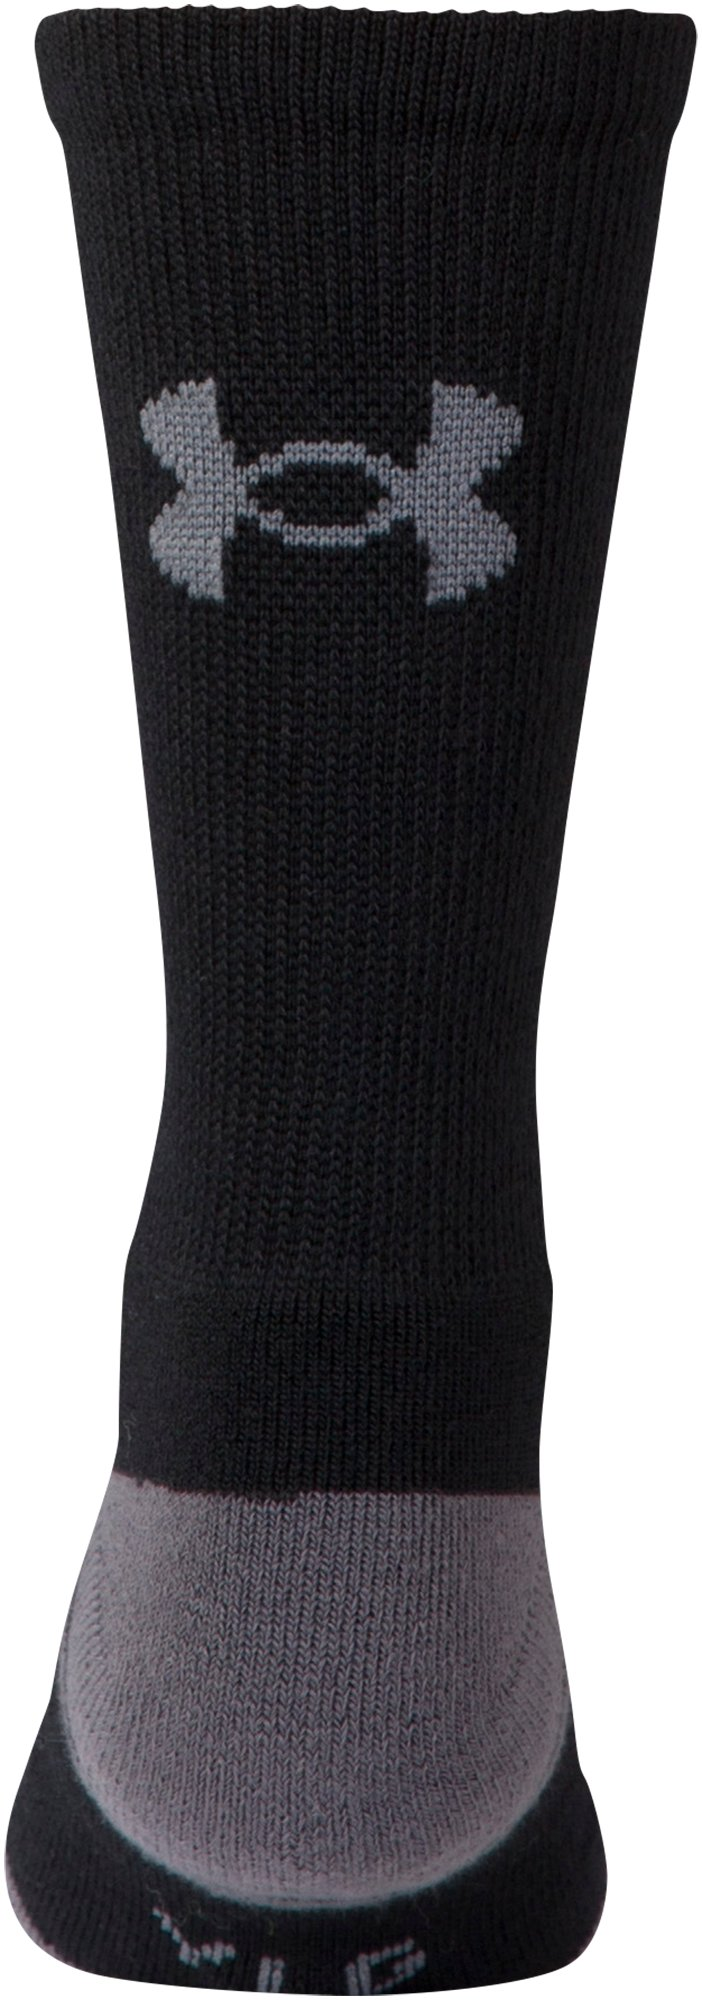 Boys' UA Resistor III Crew Socks – 6-Pack, Black , undefined